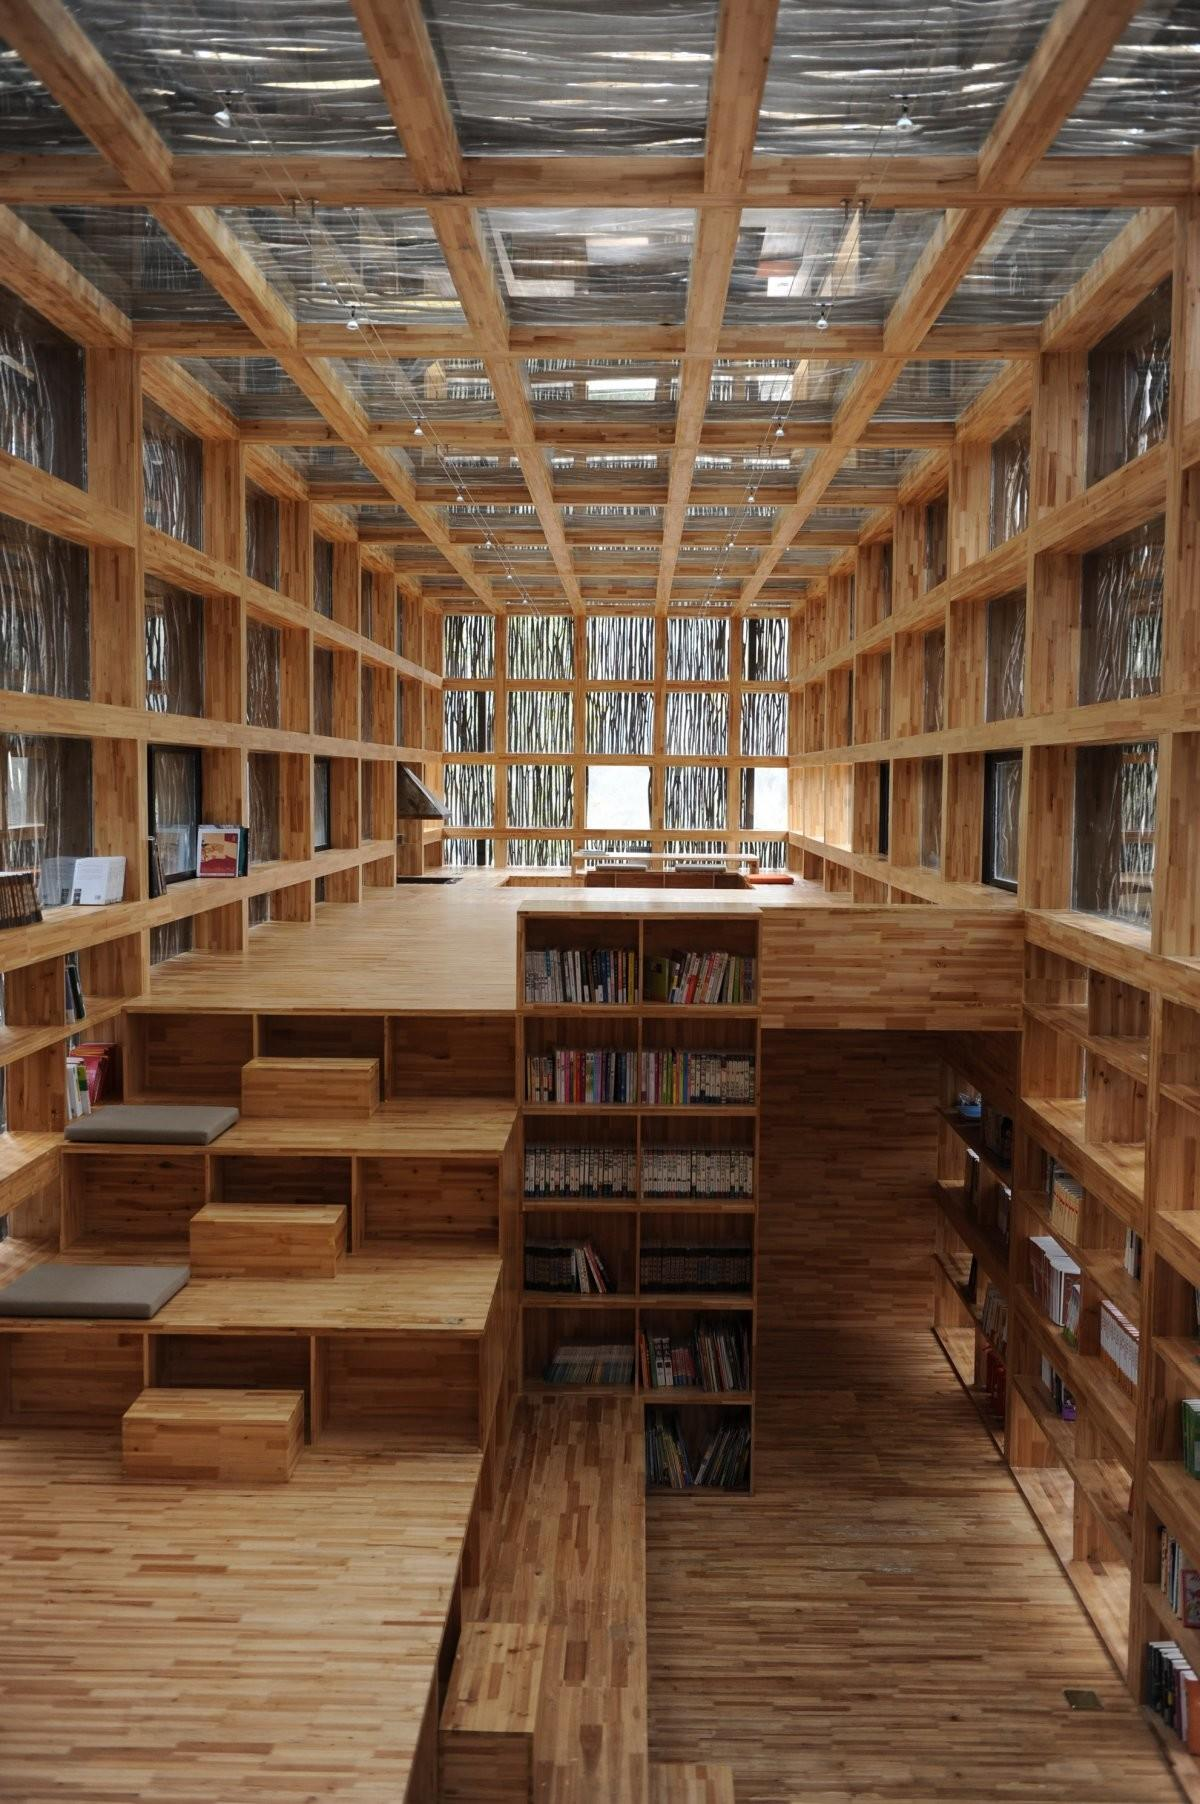 One Most Beautiful Libraries Have Ever Seen